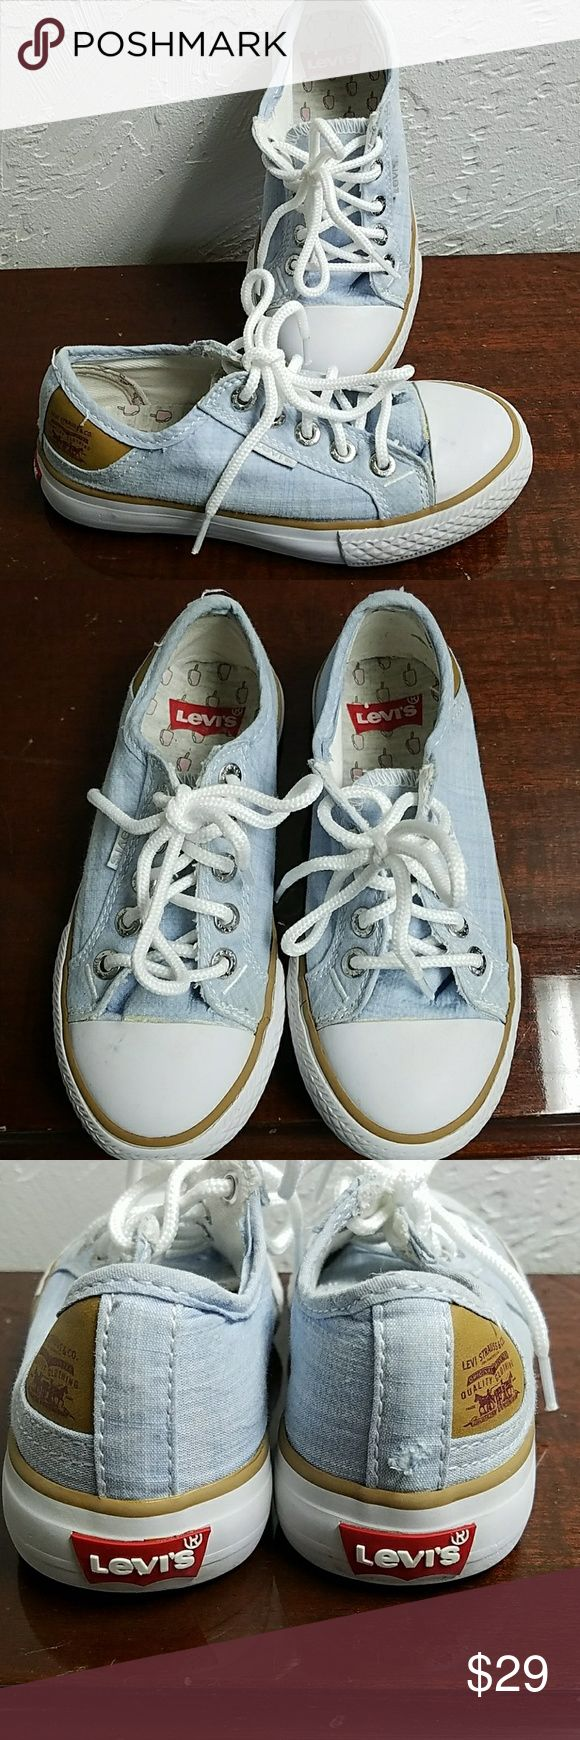 Levi's Converse style shoes Excellent used condition! One small tear at the bottom of the right shoe as shown in the photo, otherwise these shoes are in perfect condition! Levi's Shoes Sneakers